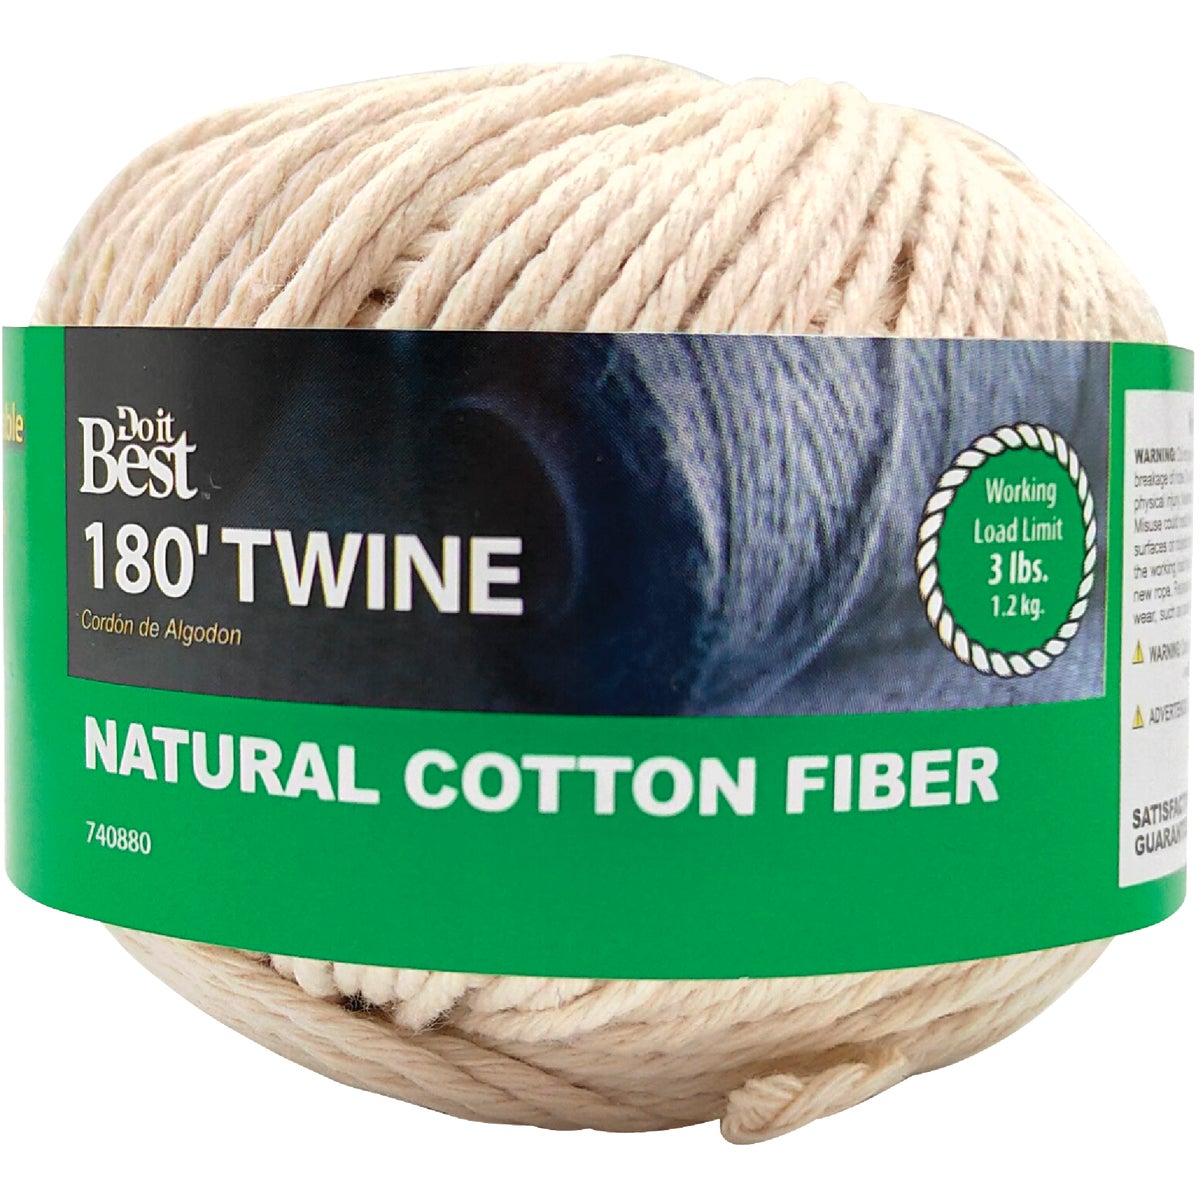 #21 180' COTTON TWINE - 740880 by Do it Best